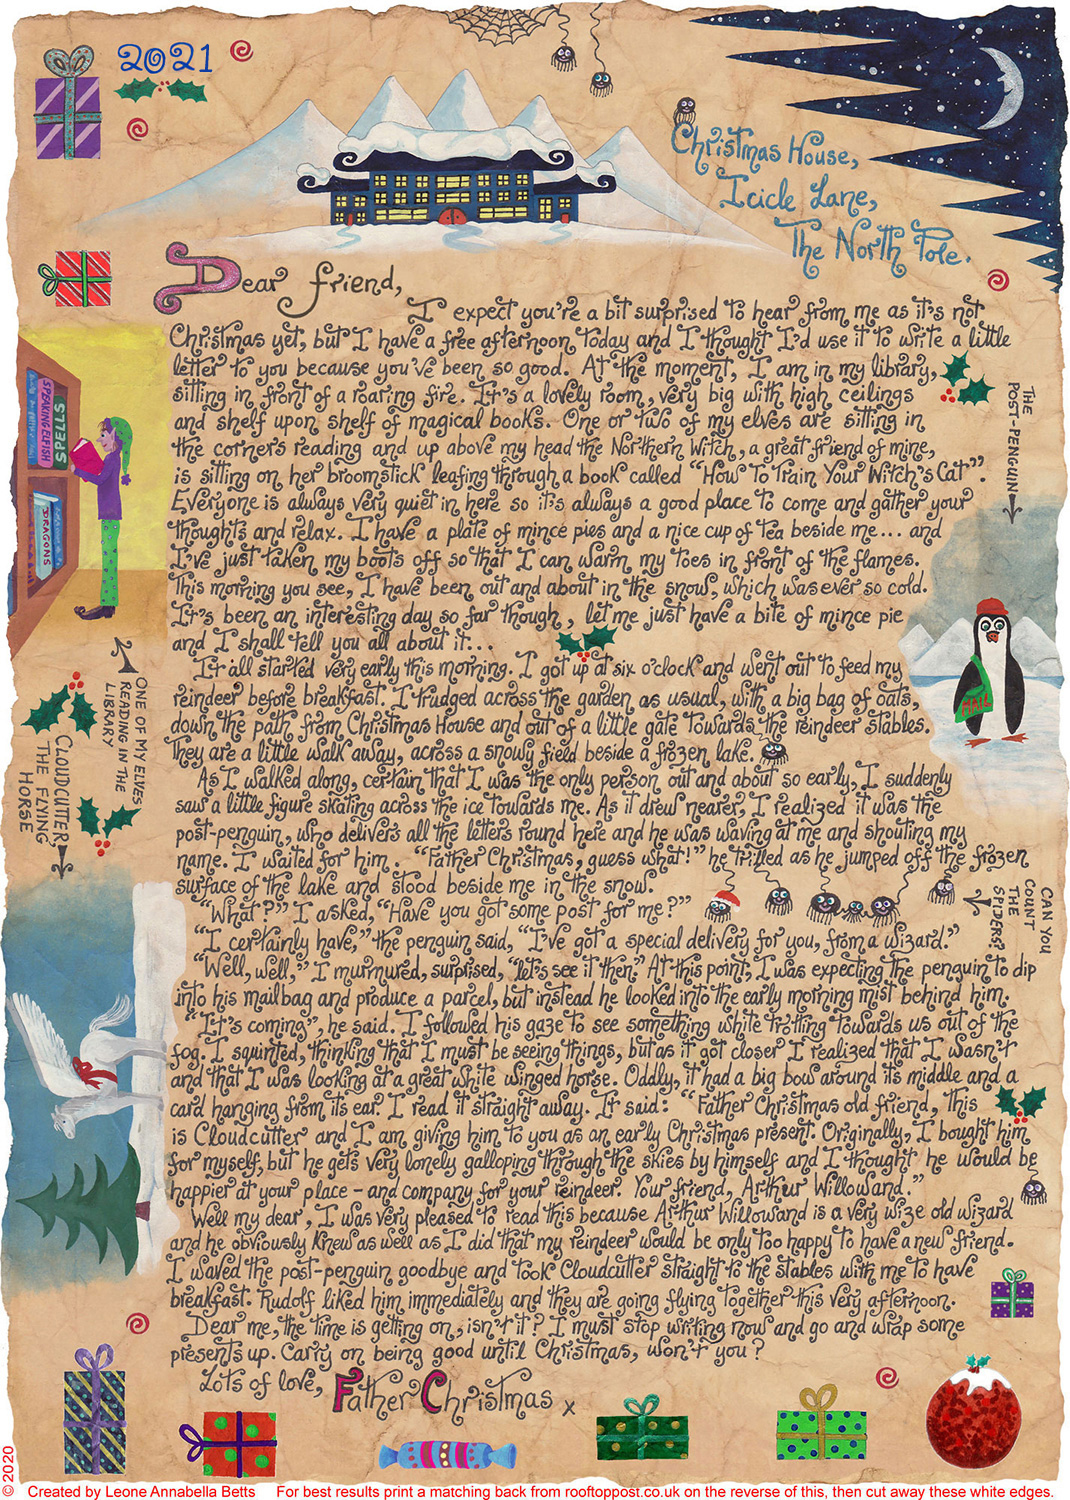 Father Christmas Letter About Why the Reindeer Are All in His Kitchen!